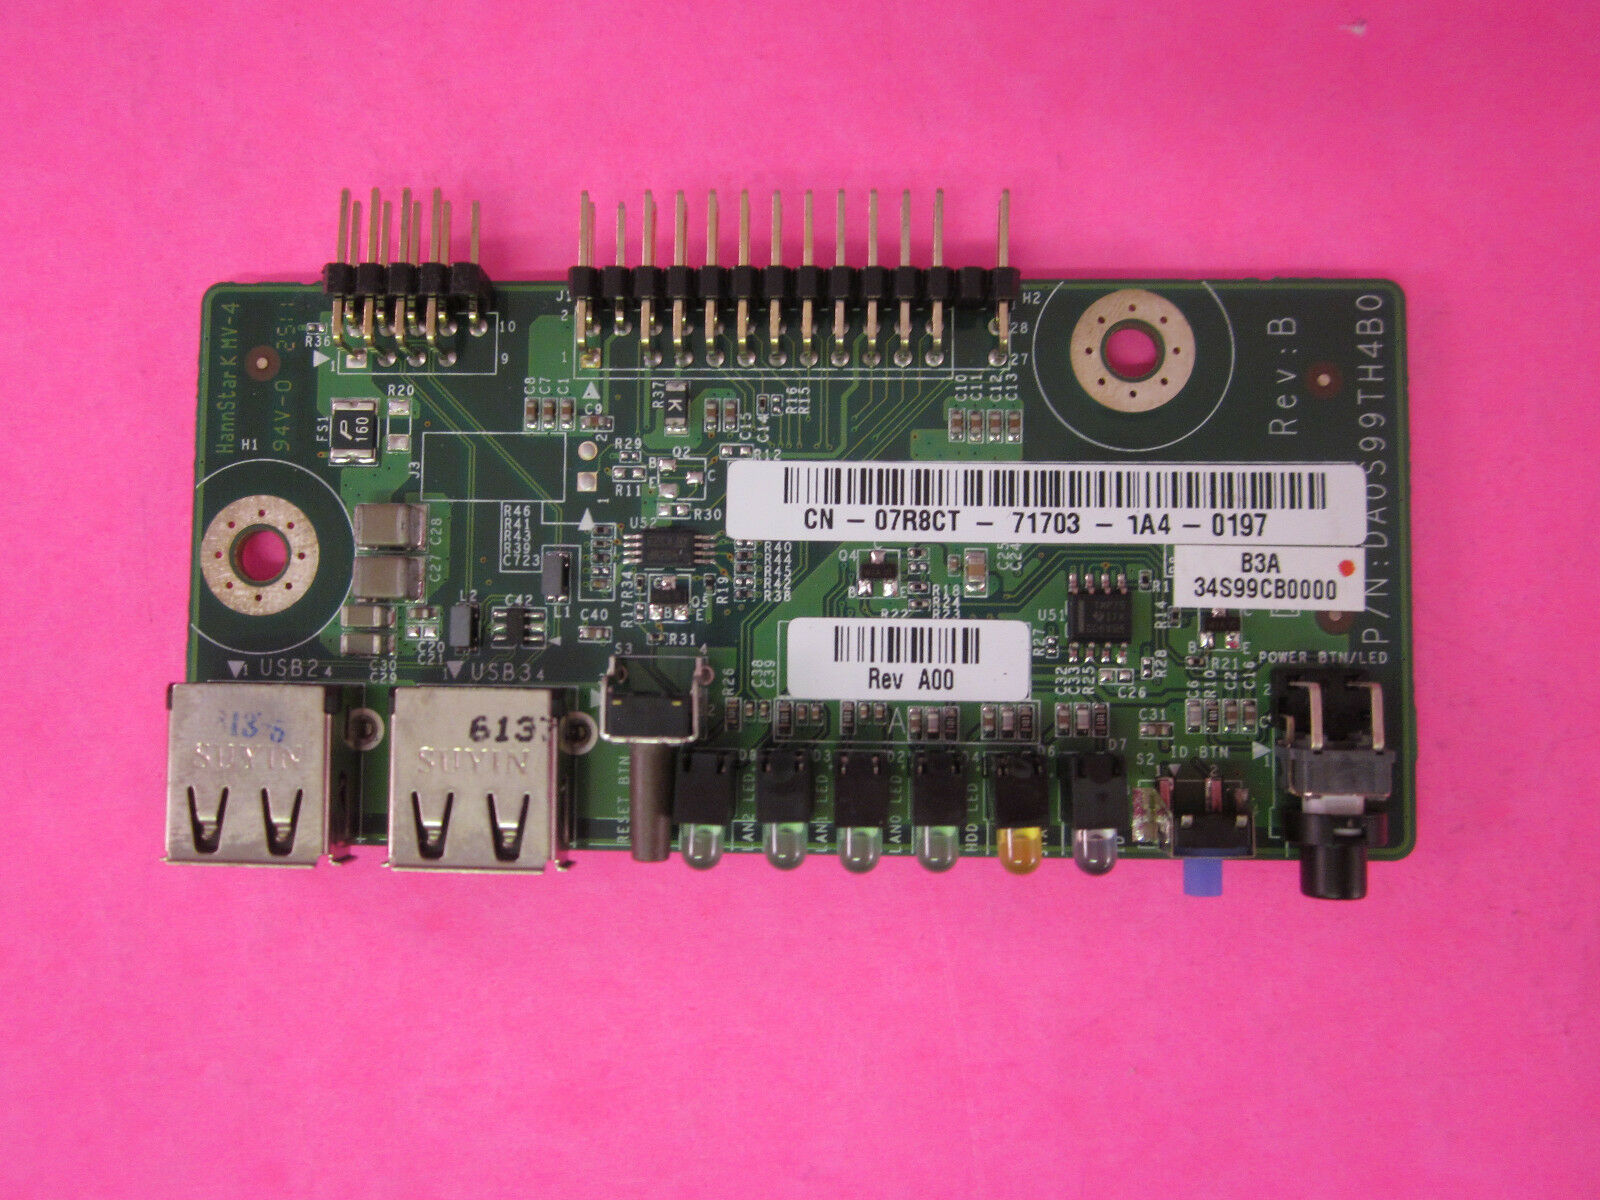 Genuine Dell Poweredge C1100 Front Usb Control Panel 7r8ct Ebay Electronic Circuitry The Operating Controls Are On Plate Picture 1 Of 3